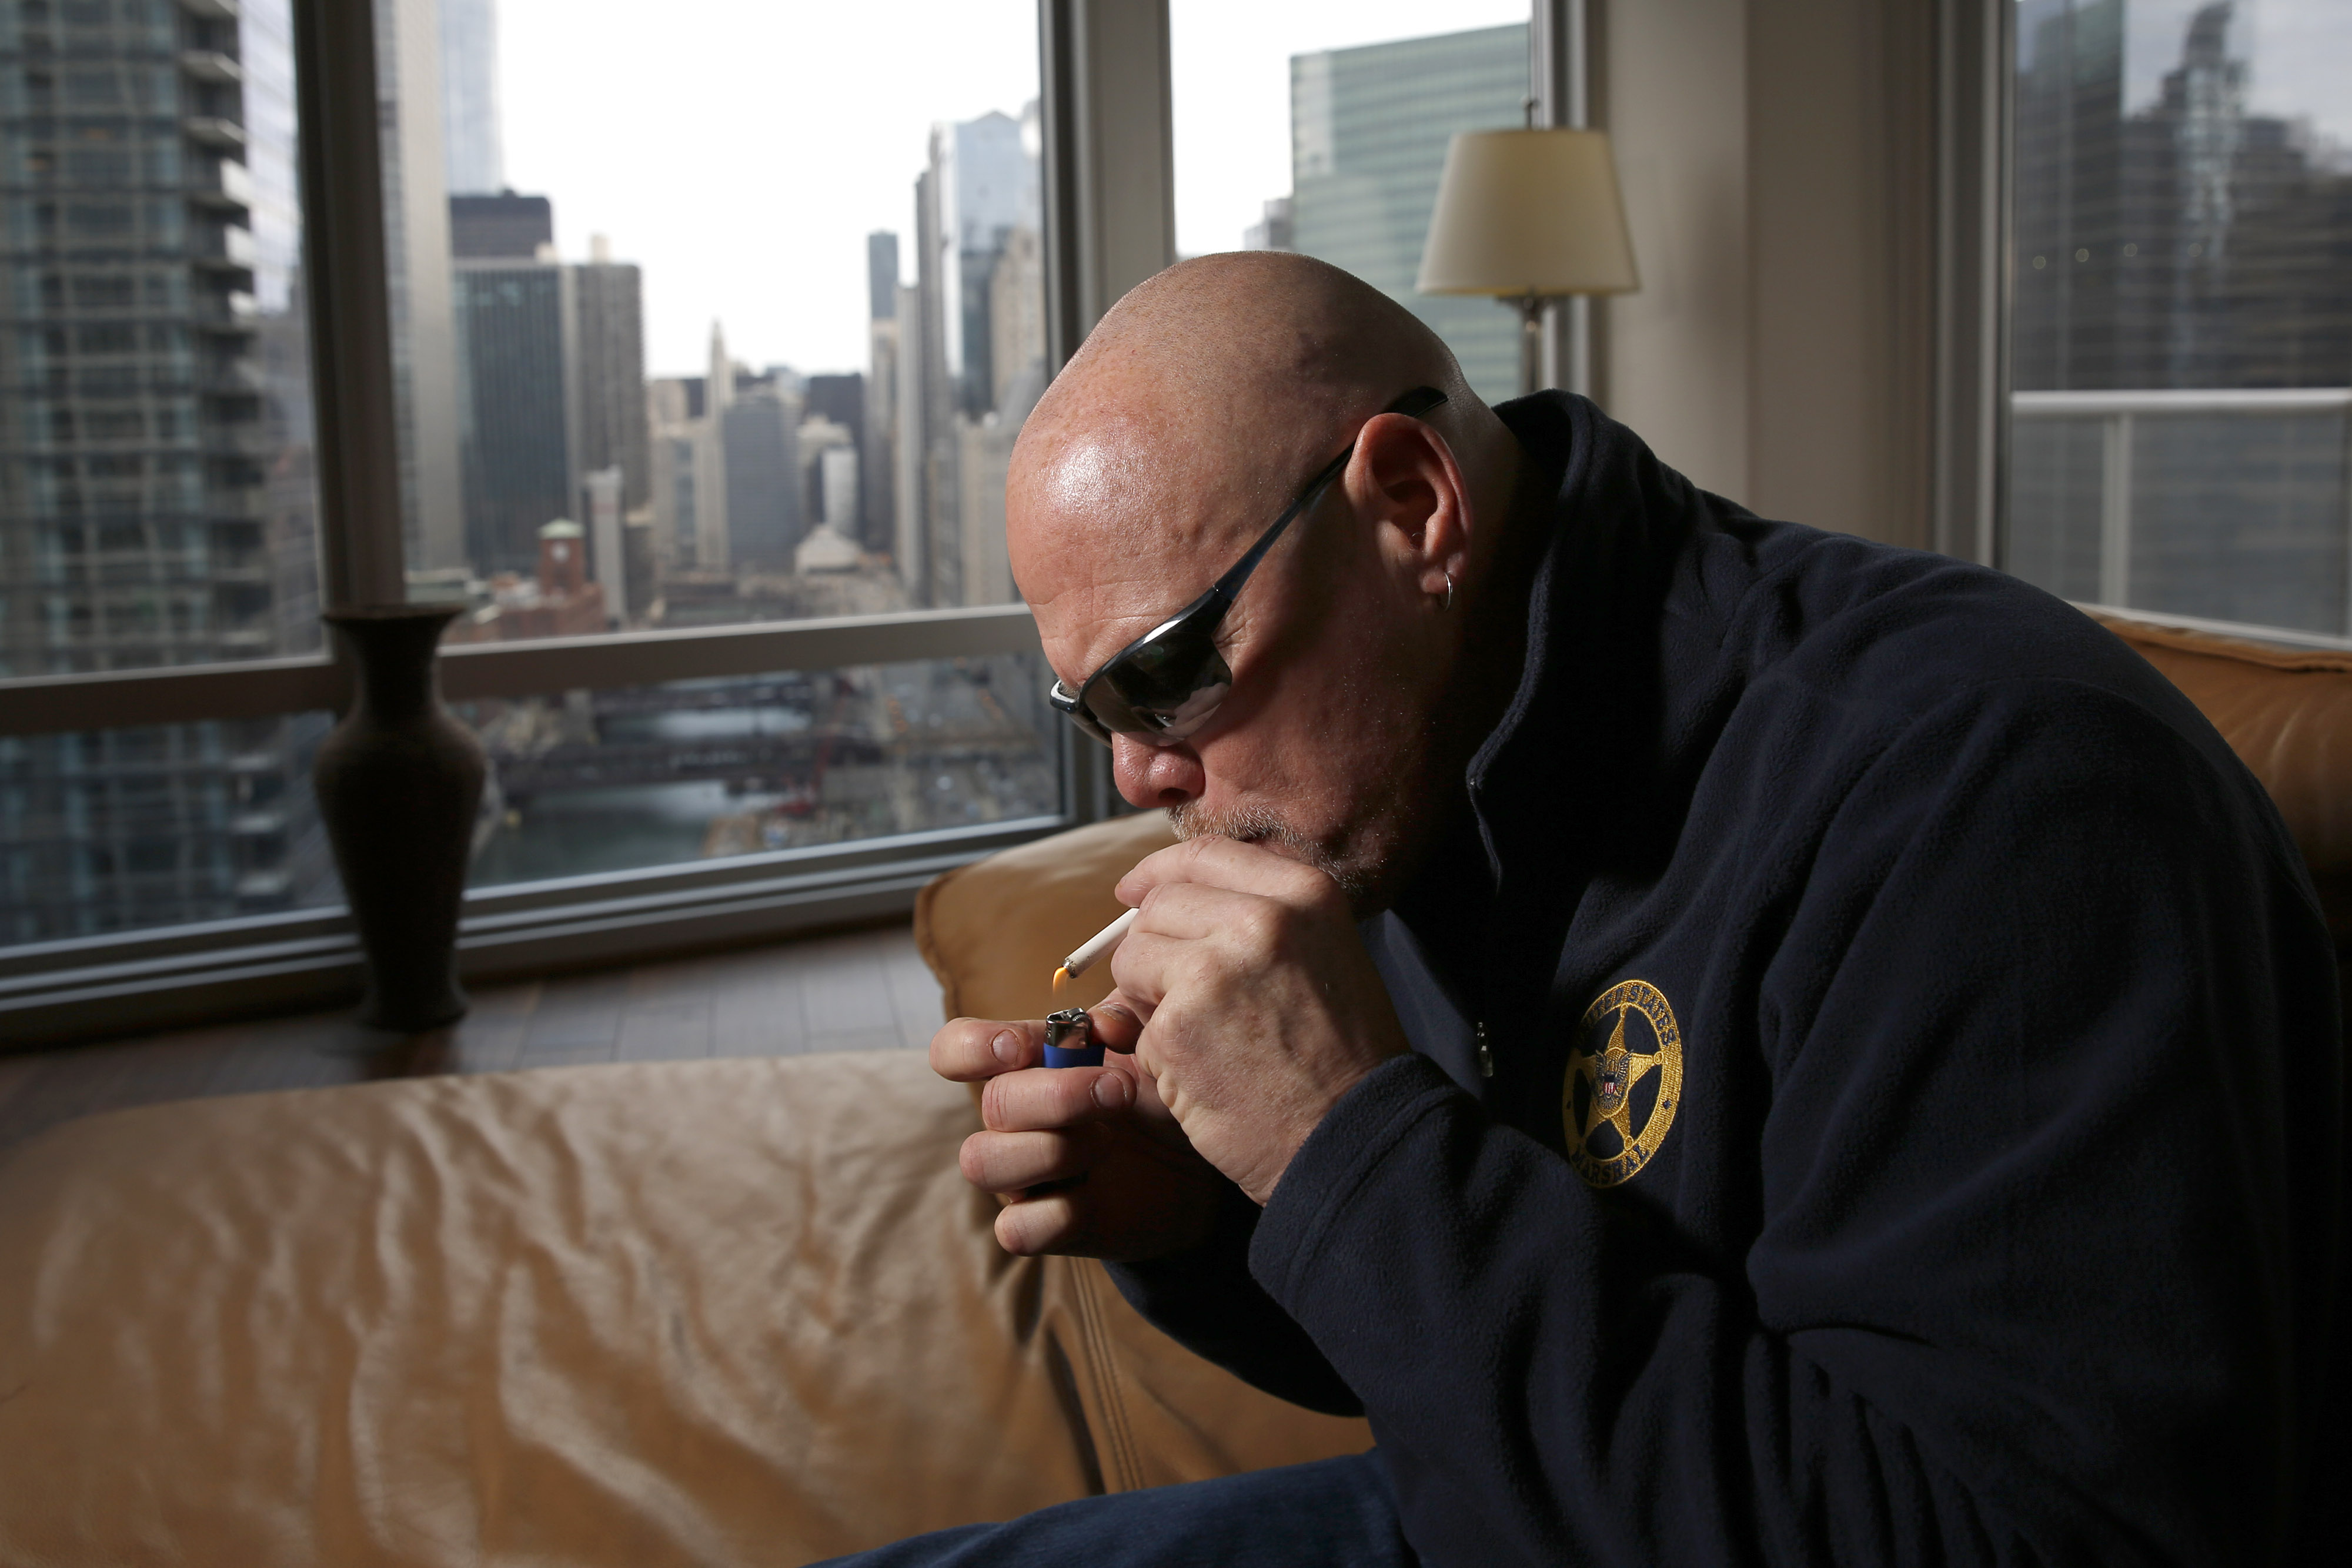 """In this Jan. 28, 2016 photo, former Chicago Bears quarterback Jim McMahons smokes medical marijuana in Chicago. McMahon calls himself """"old school,"""" including his use of marijuana both during and after his career. Yet McMahon's stab at self-medicating coul"""